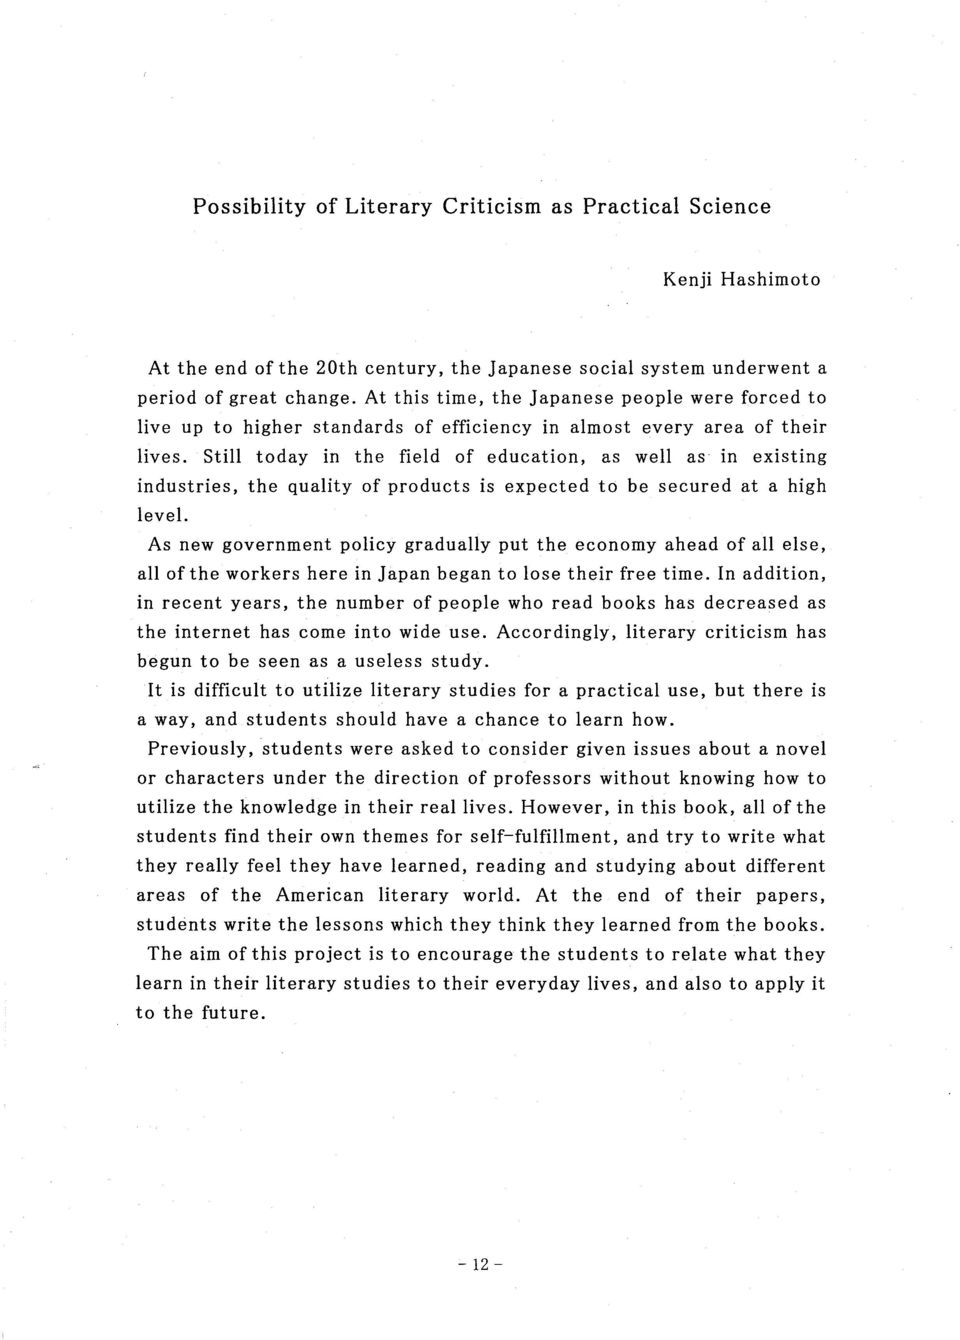 Still today in the field of education, as well as in existing industries, the quality of products is expected to be secured at a high level.